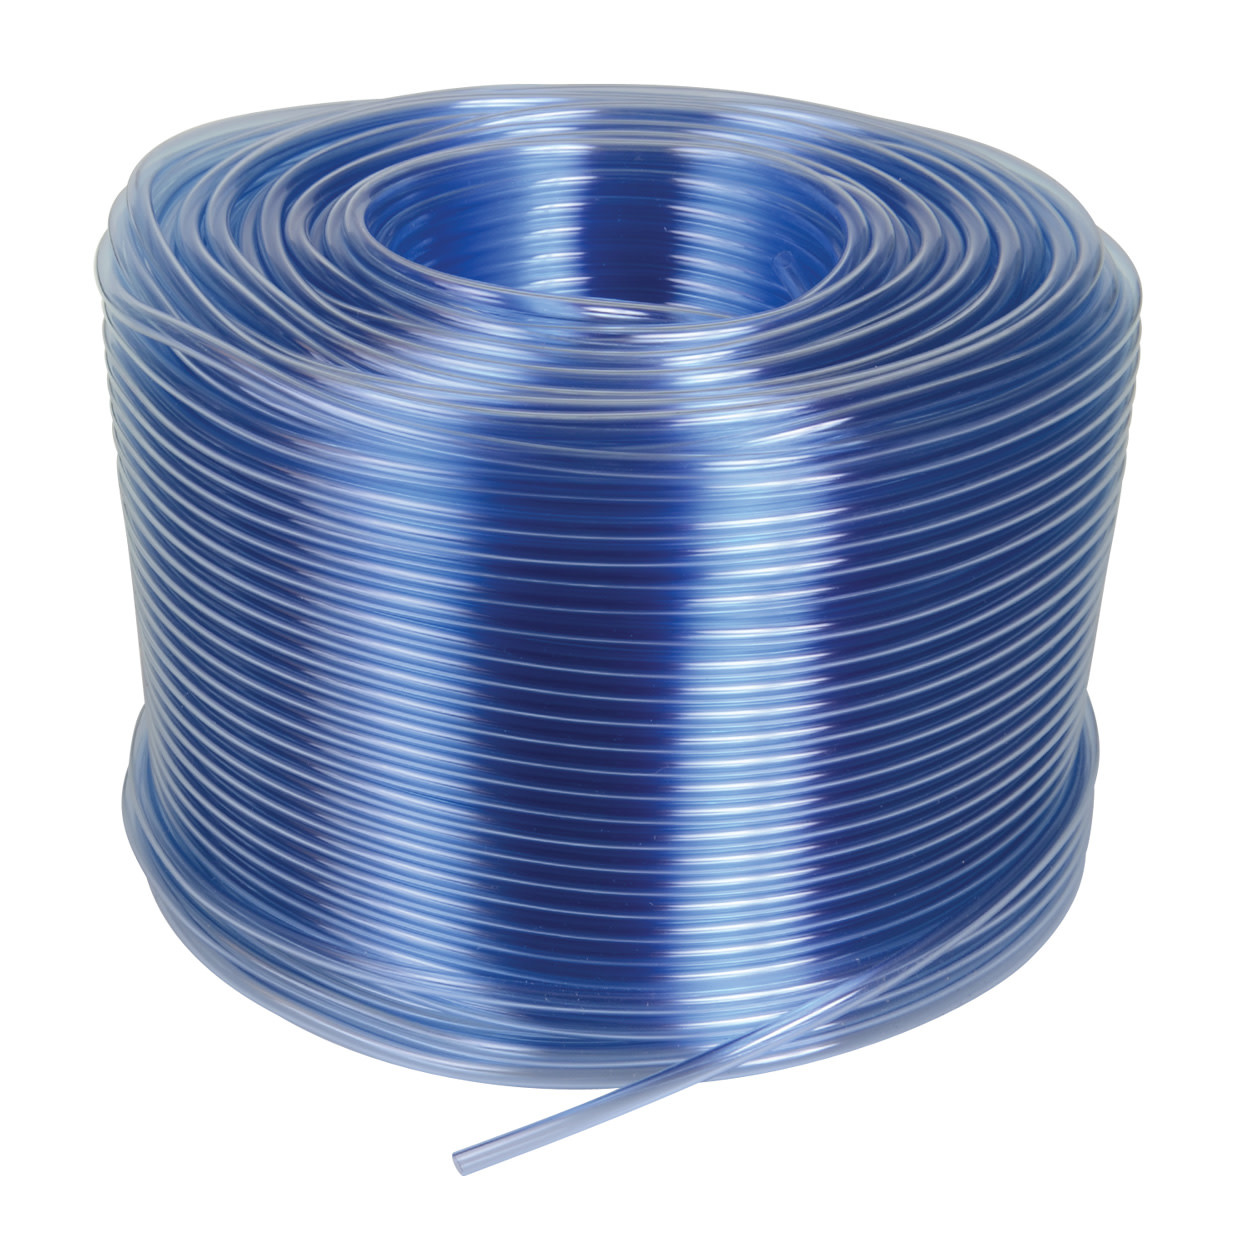 Penn-Plax Air Line Tubing per Foot